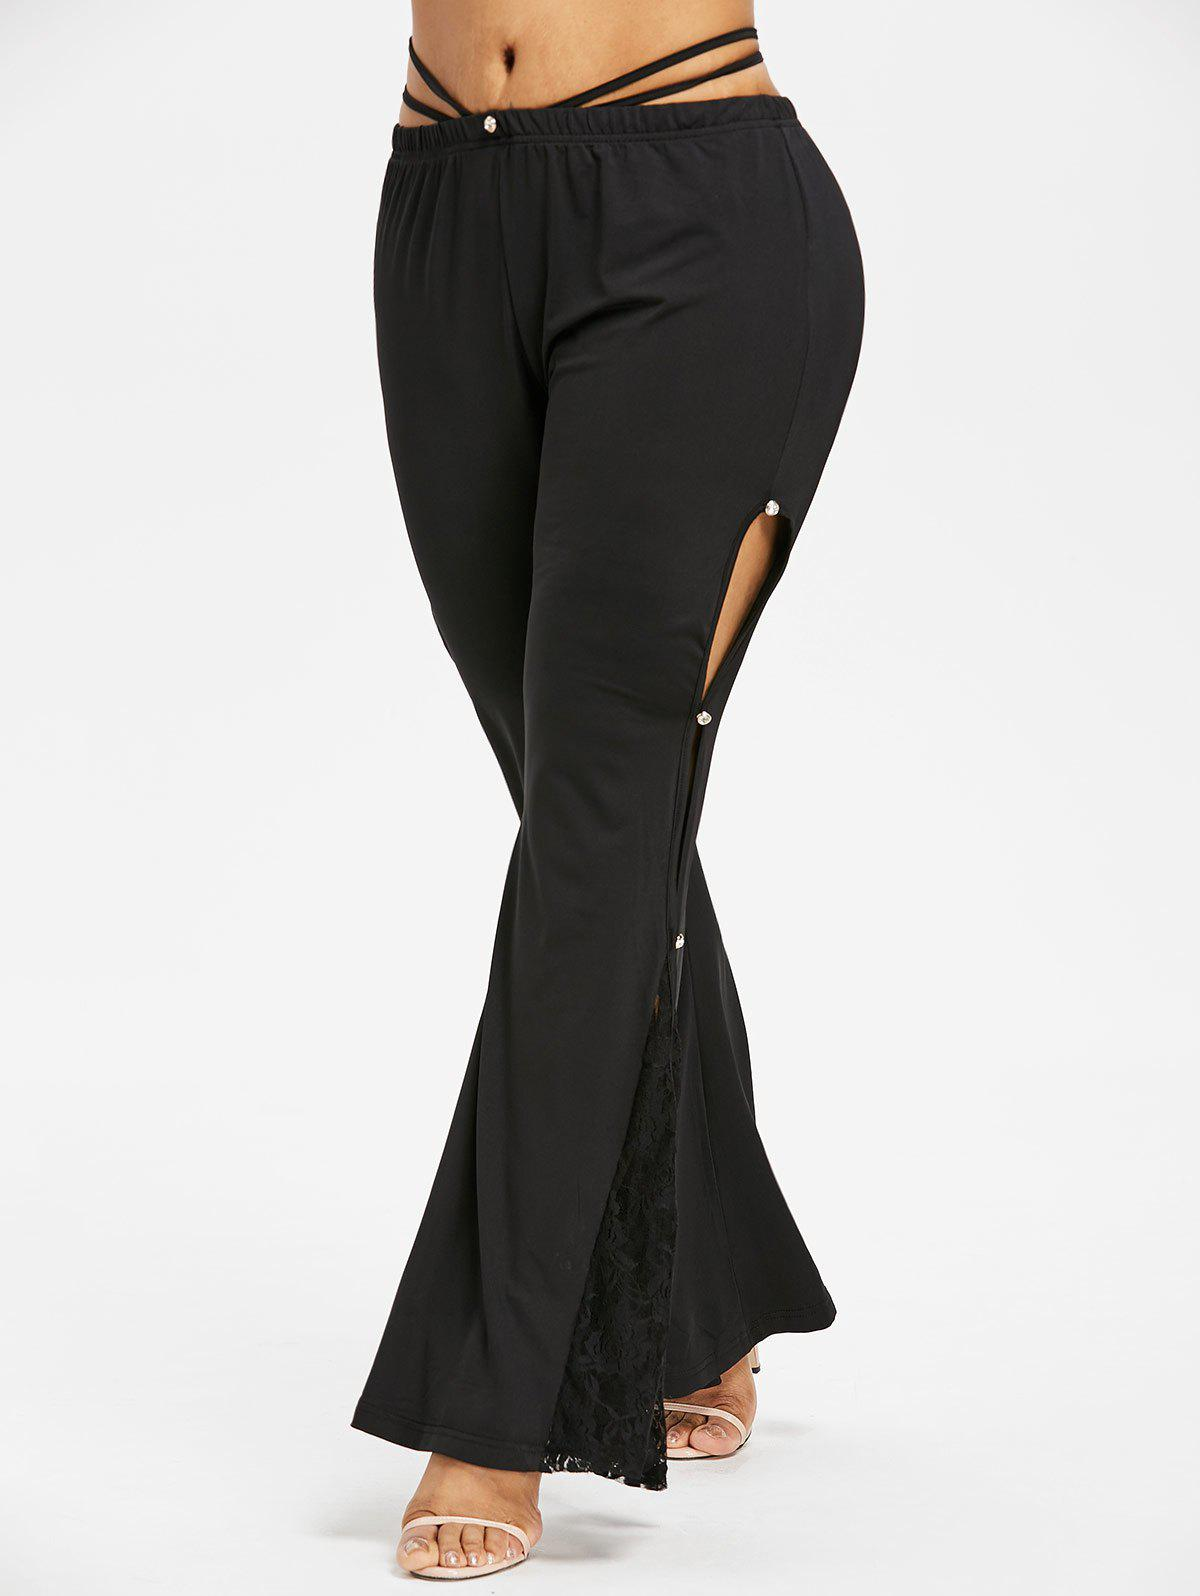 Store Plus Size Lace Cut Out Flare Leggings